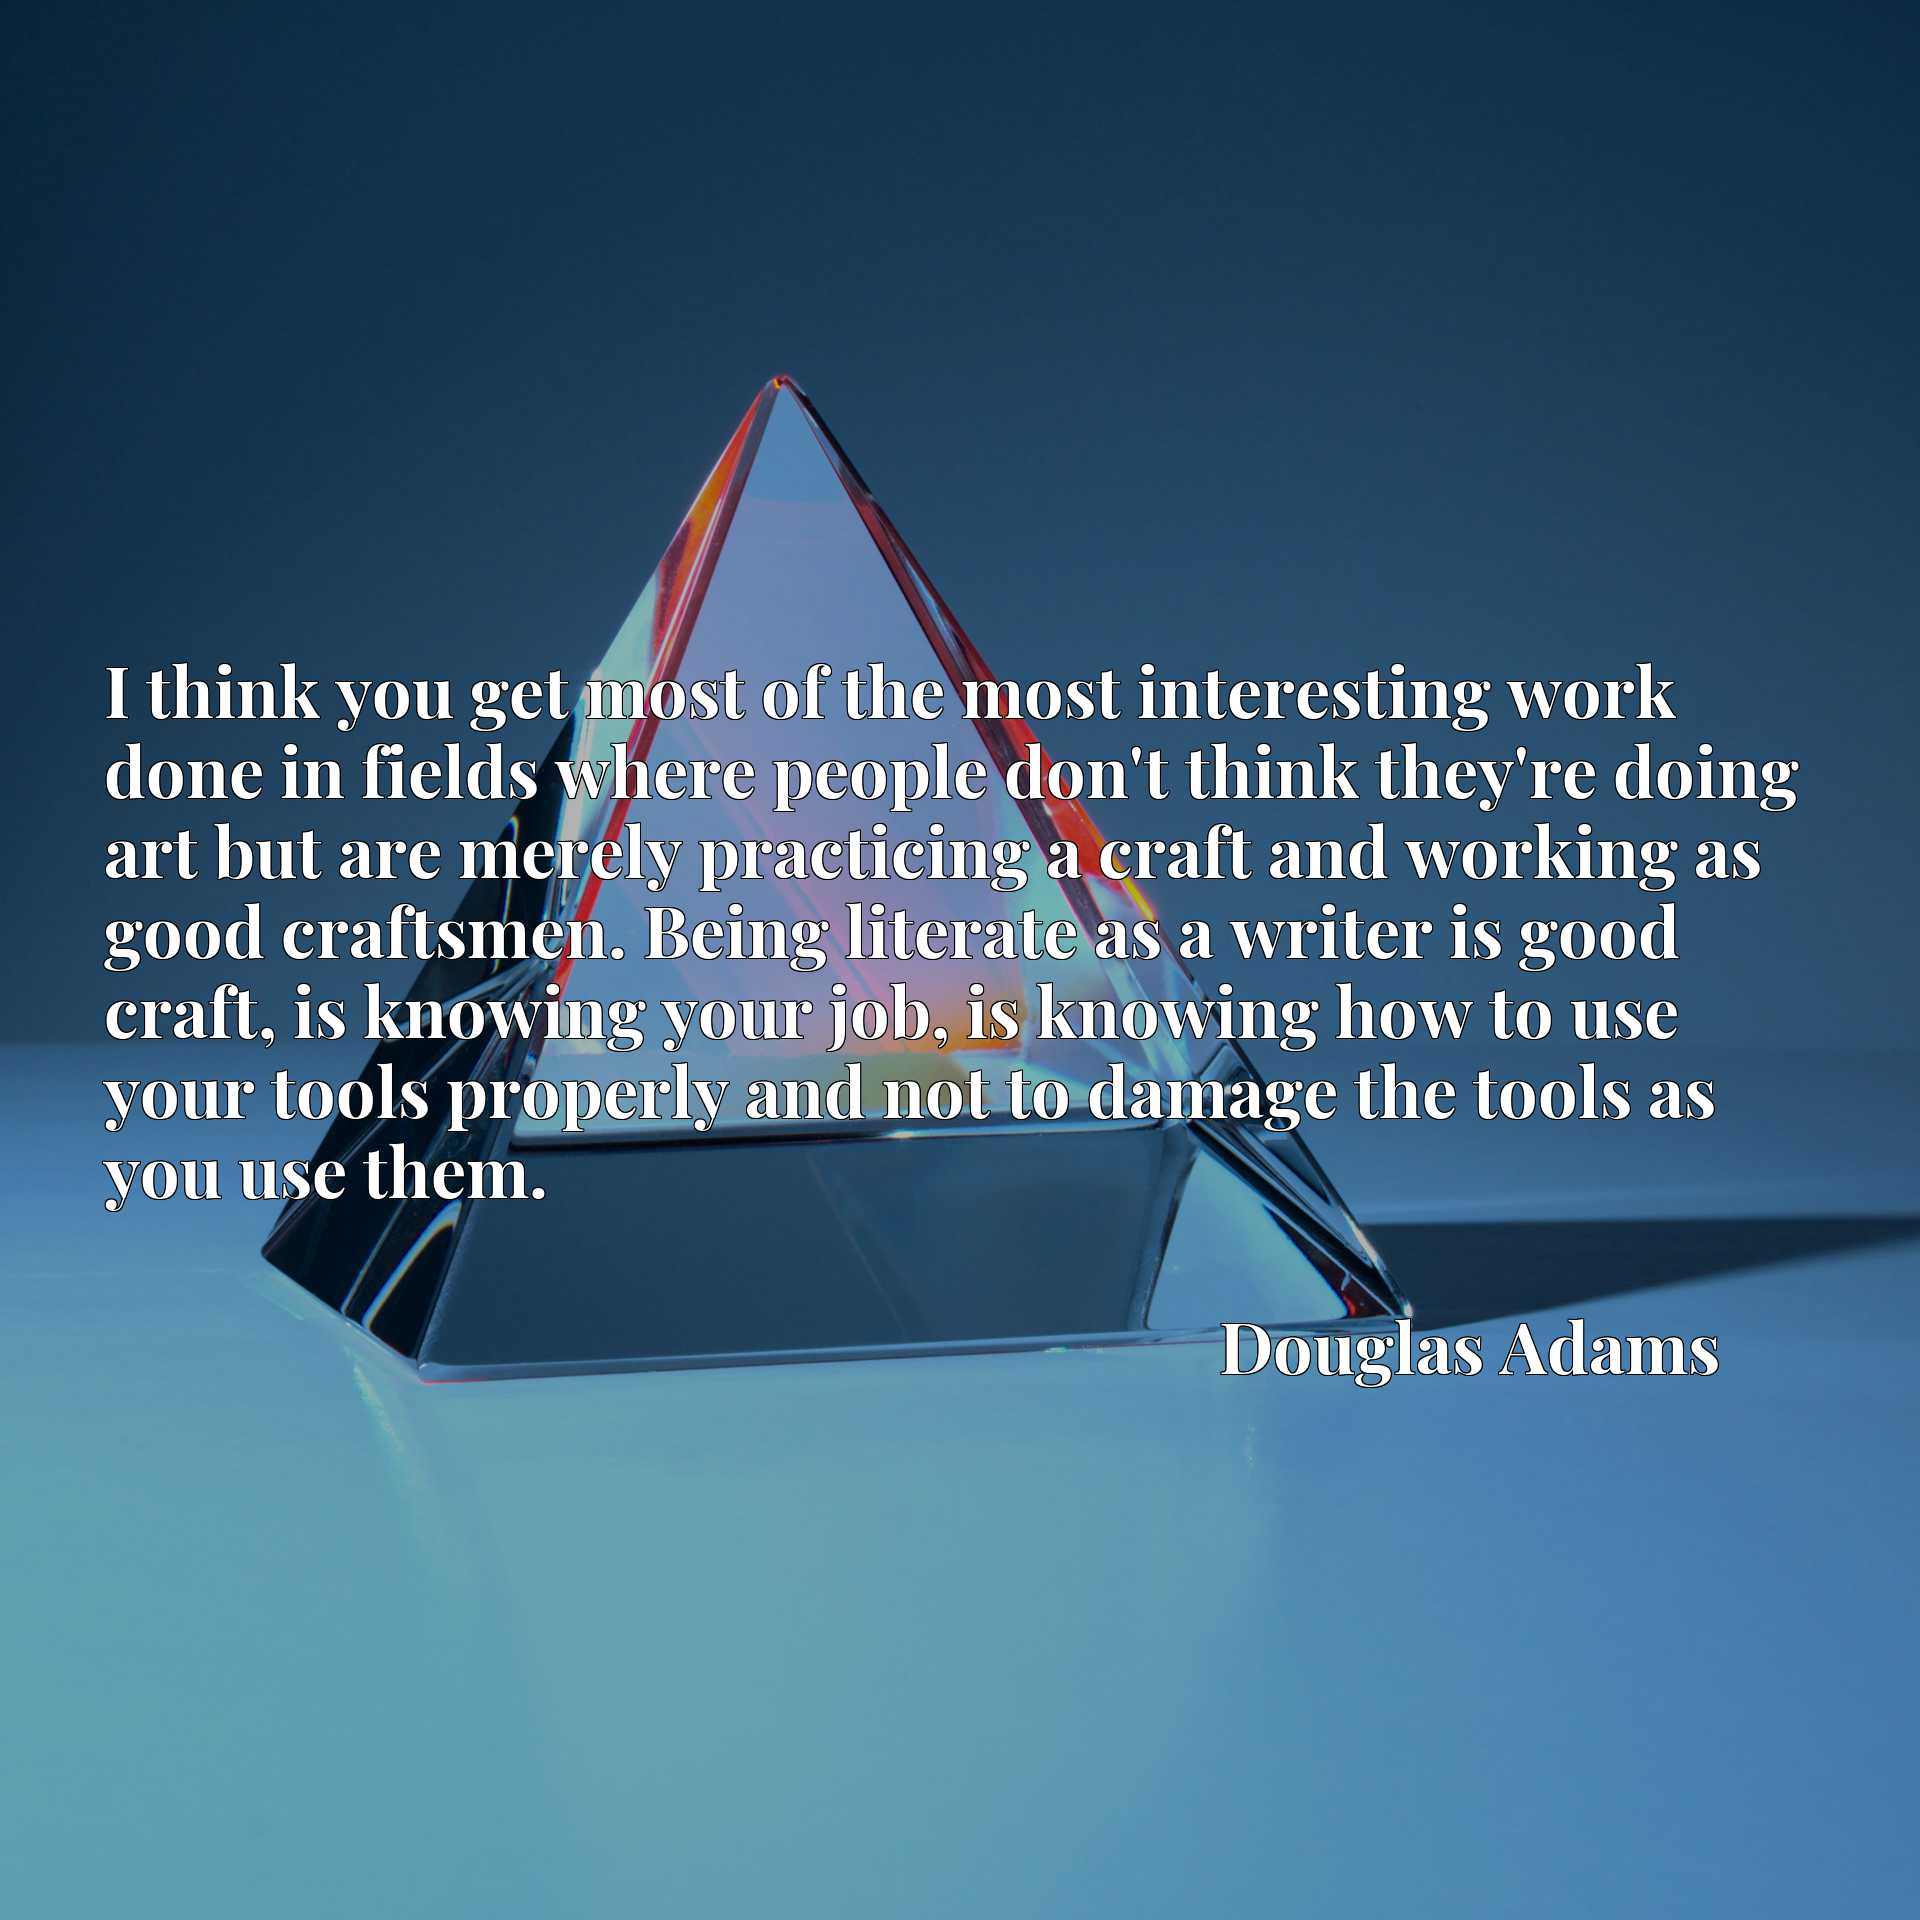 I think you get most of the most interesting work done in fields where people don't think they're doing art but are merely practicing a craft and working as good craftsmen. Being literate as a writer is good craft, is knowing your job, is knowing how to use your tools properly and not to damage the tools as you use them.